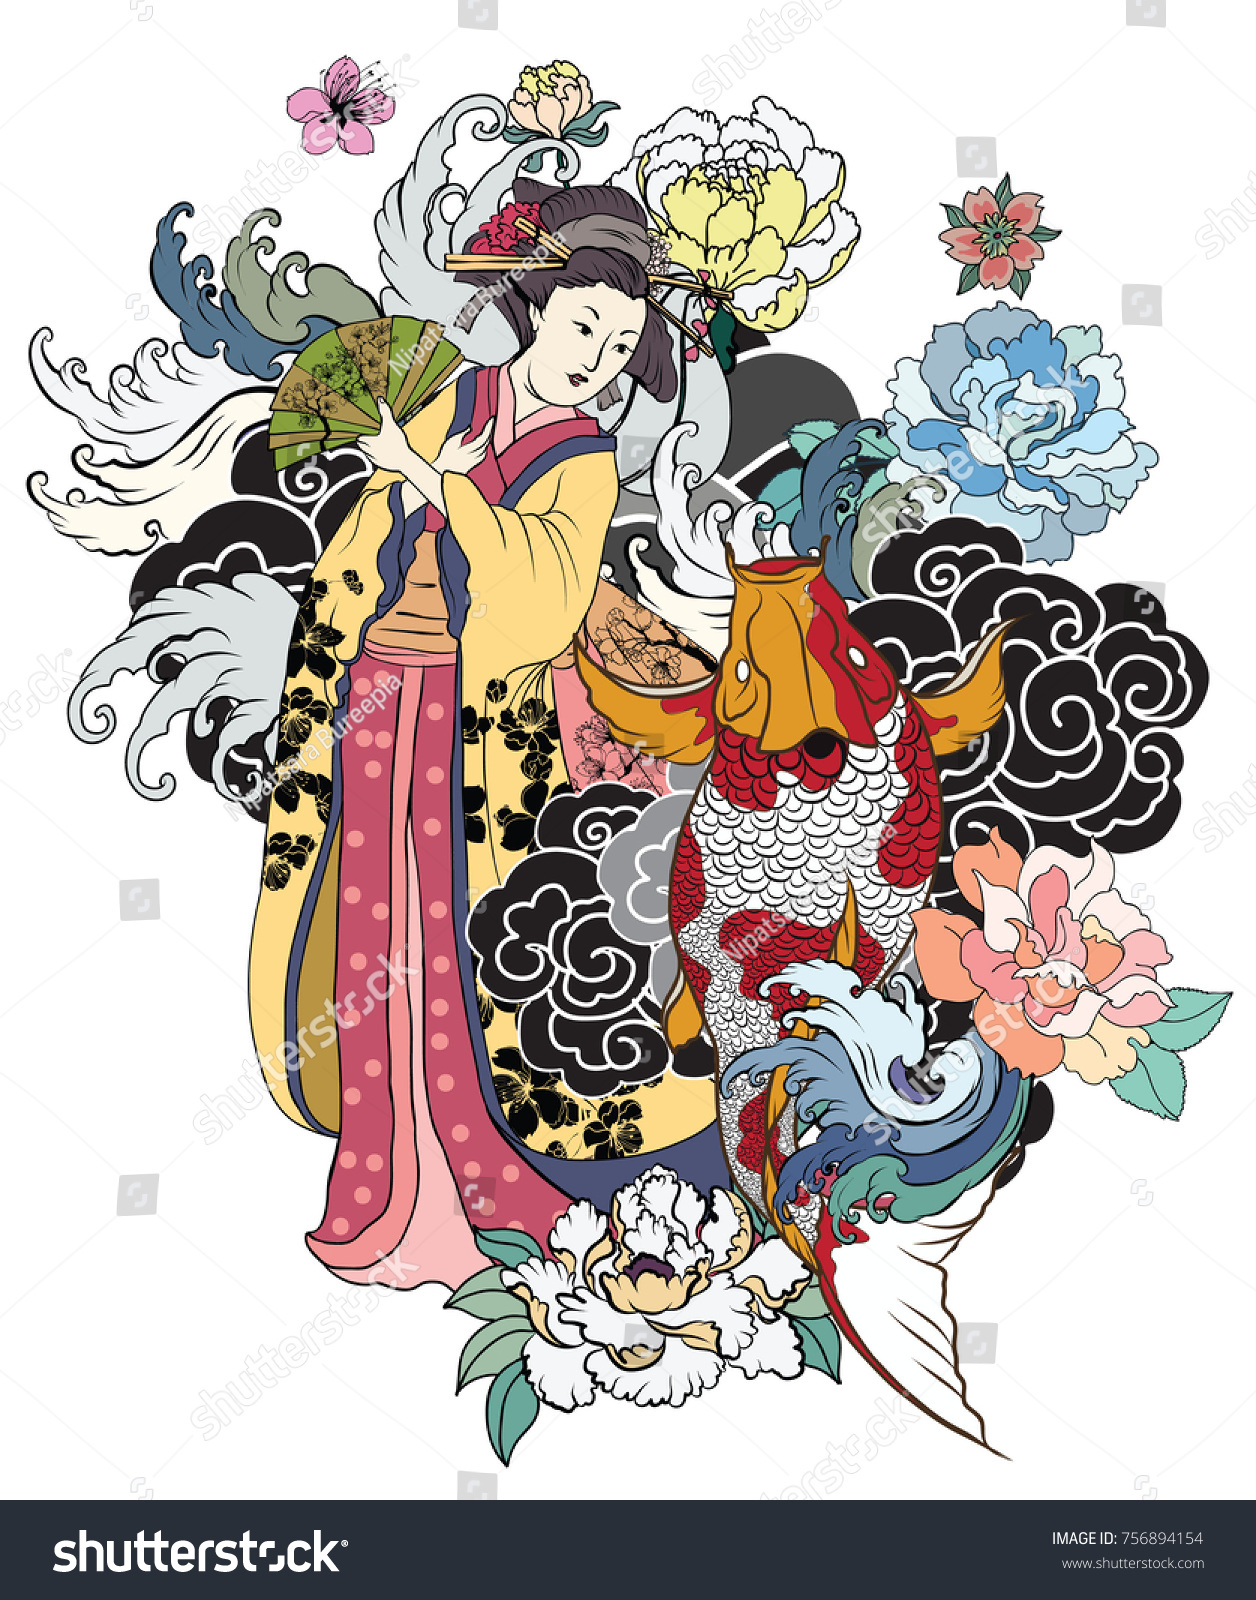 Hand drawn geisha women hold fan japanese women in kimono with cherry blossom and koi